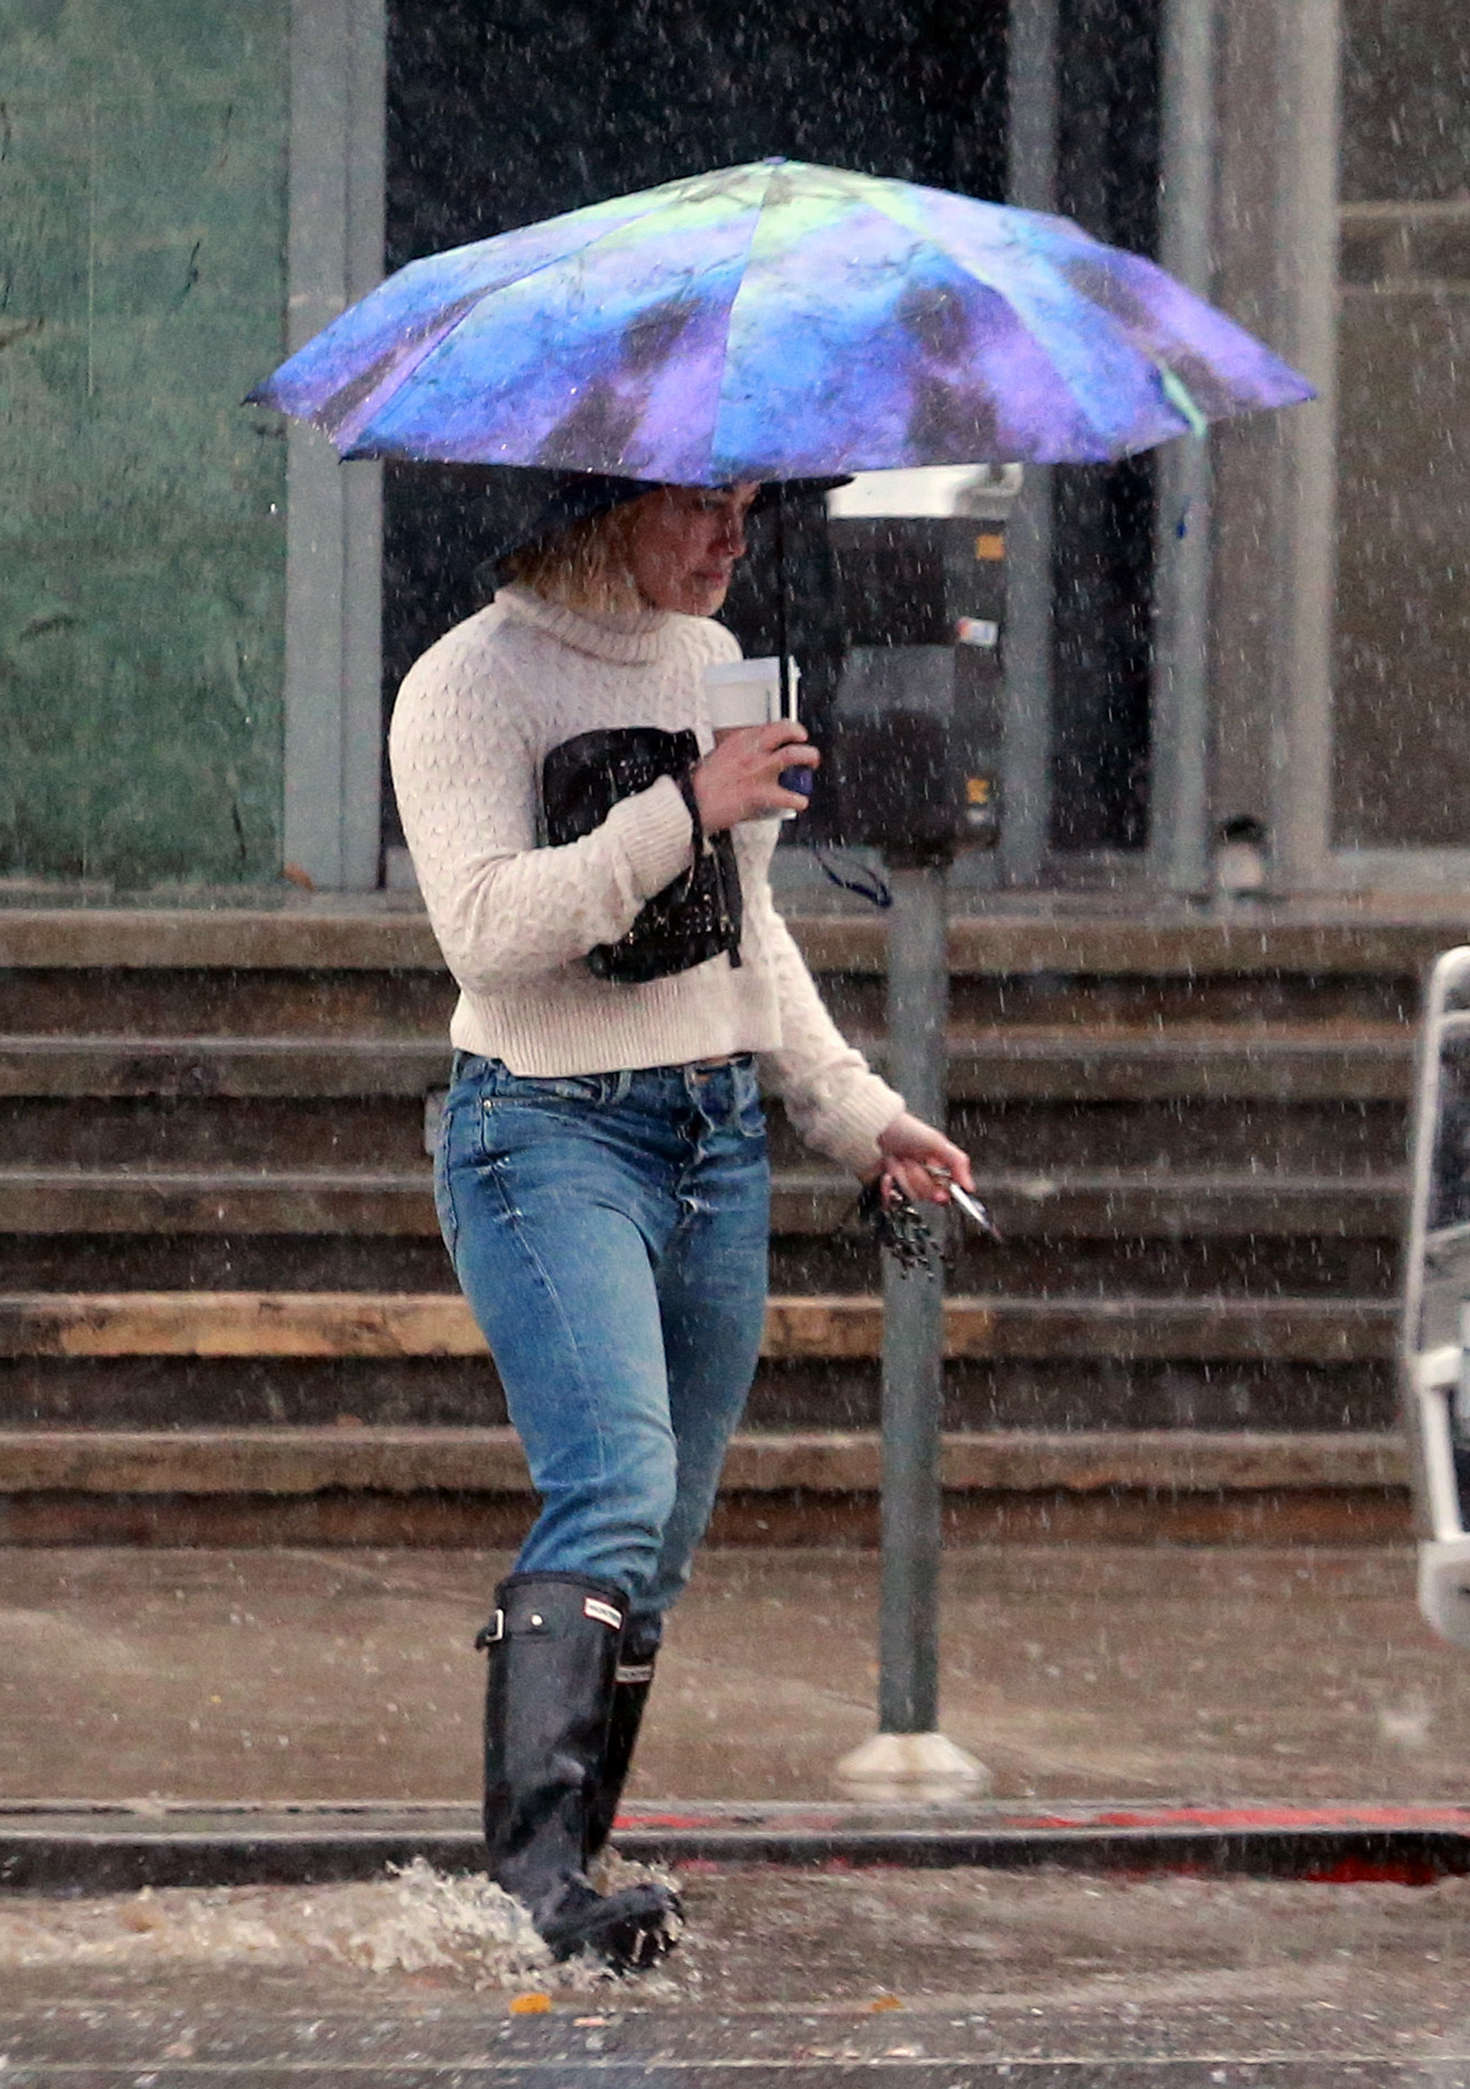 Hilary Duff 2016 : Hilary Duff in Jeans out on a rainy day -02